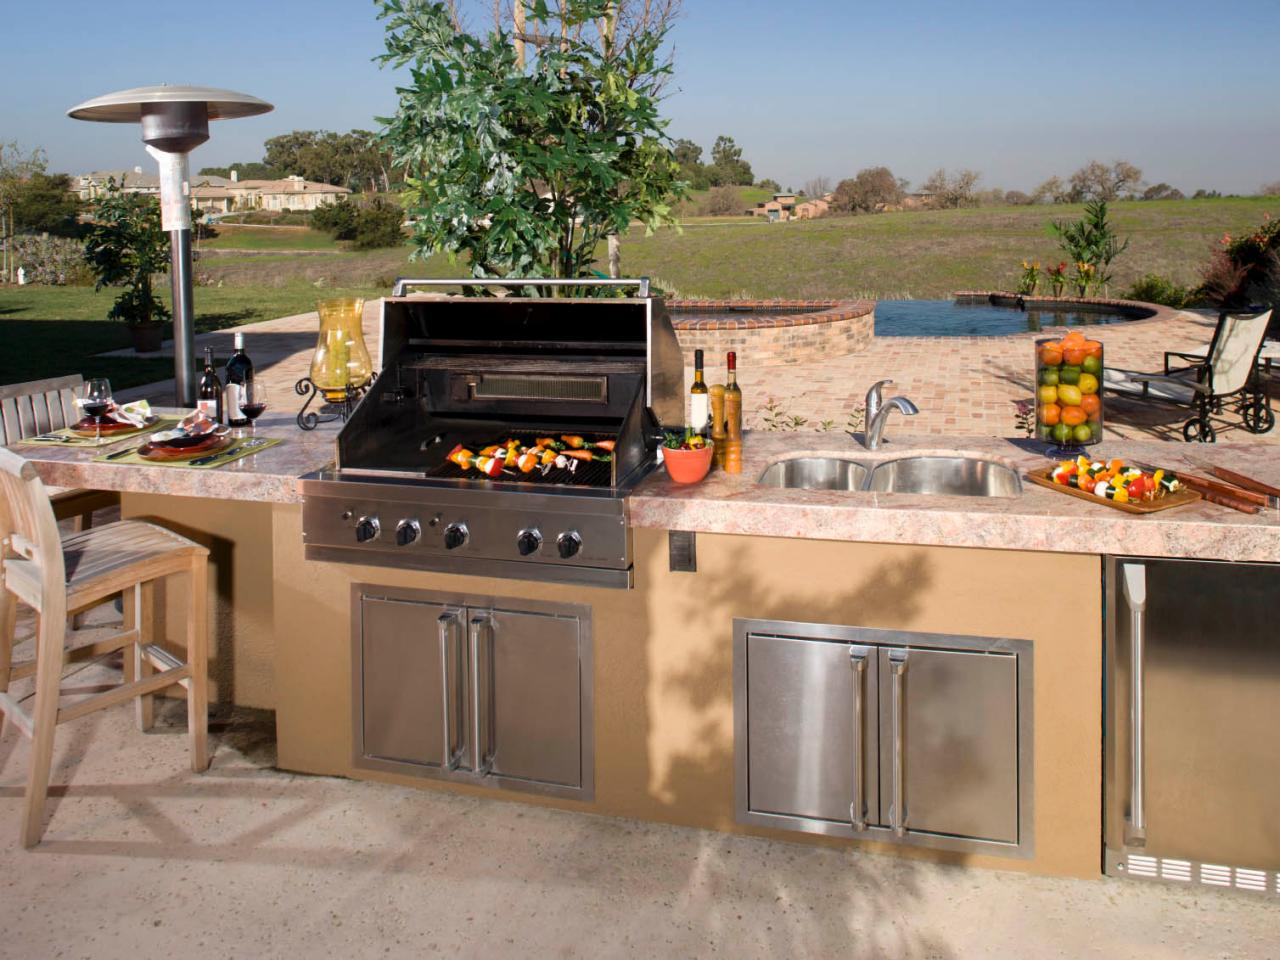 Outdoor Kitchens Designs outdoor kitchen design ideas: pictures, tips & expert advice | hgtv